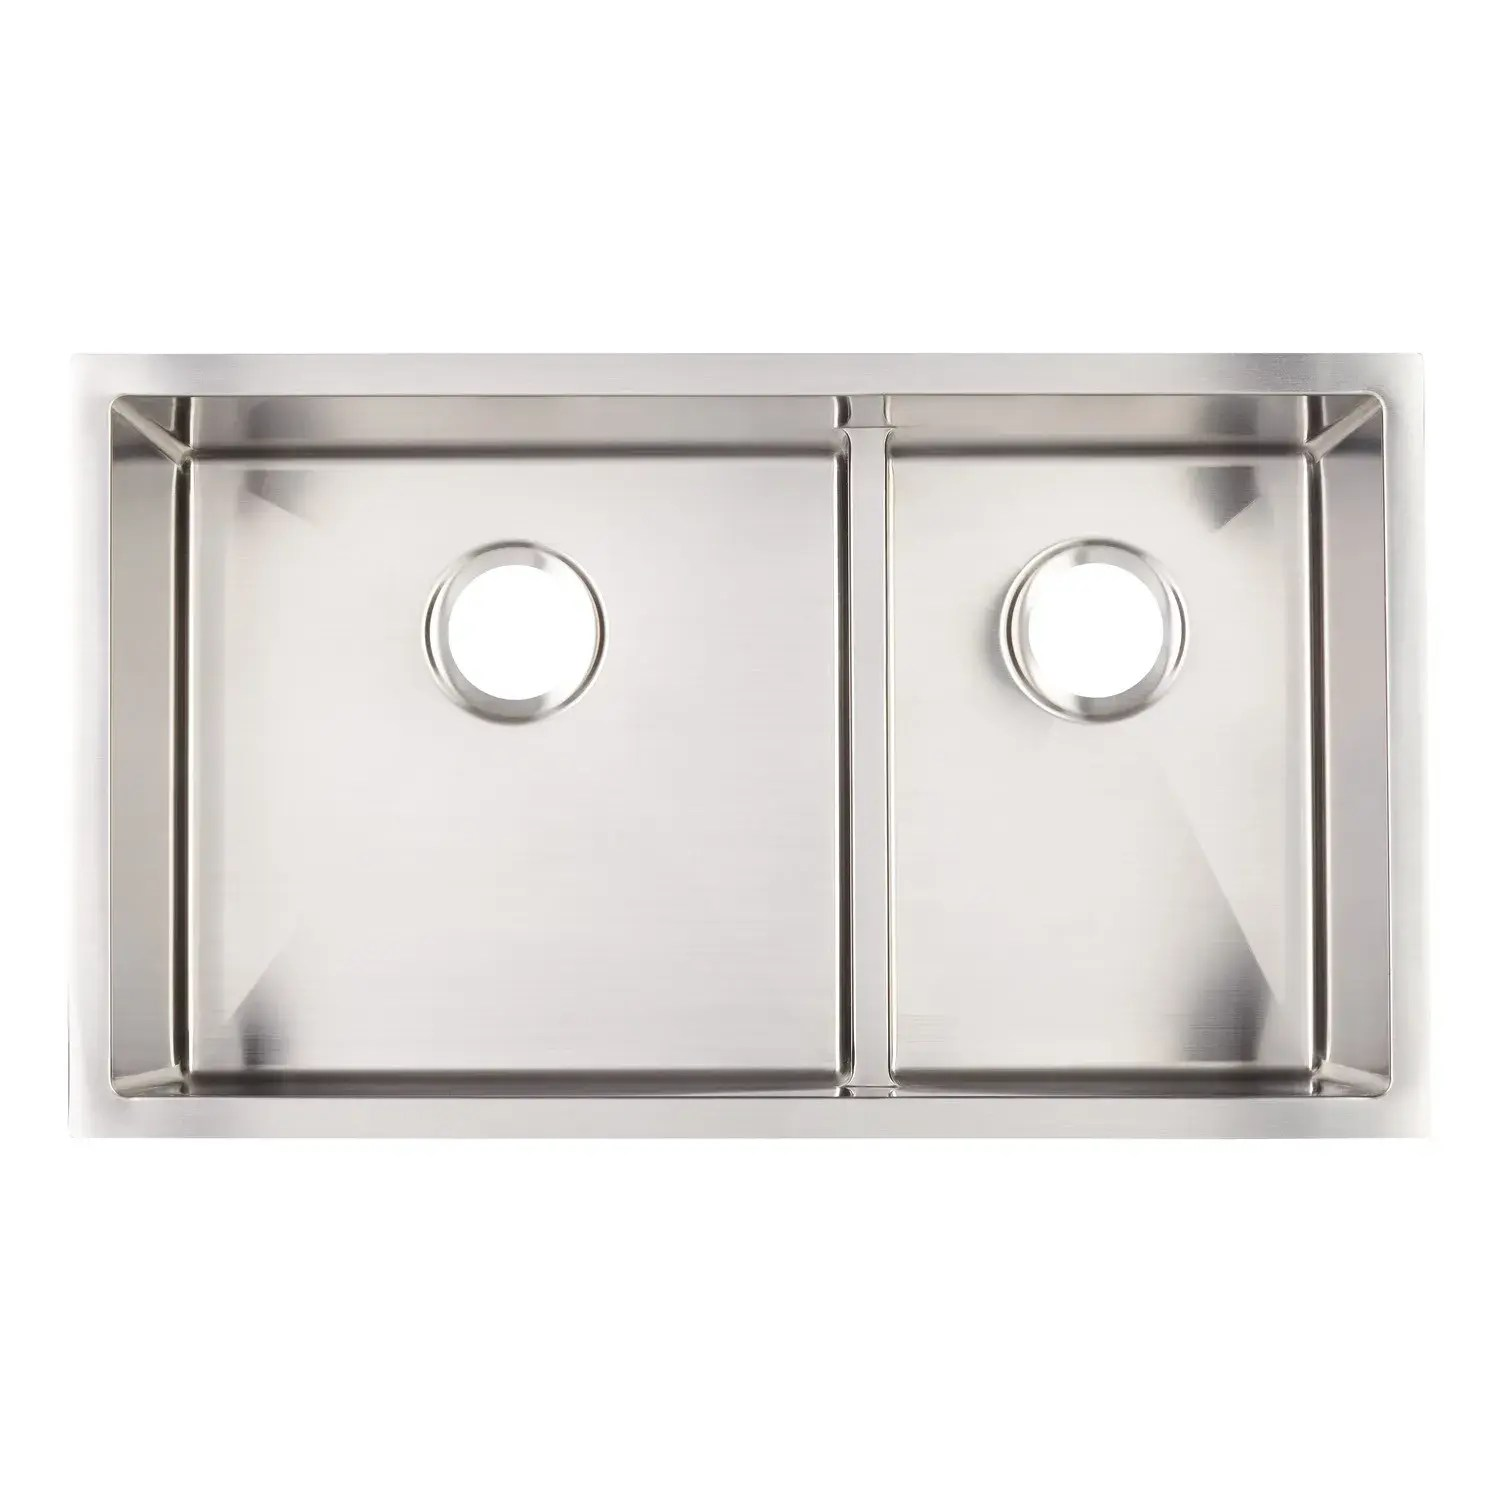 32 ortega 70 30 low divide double bowl stainless steel undermount sink